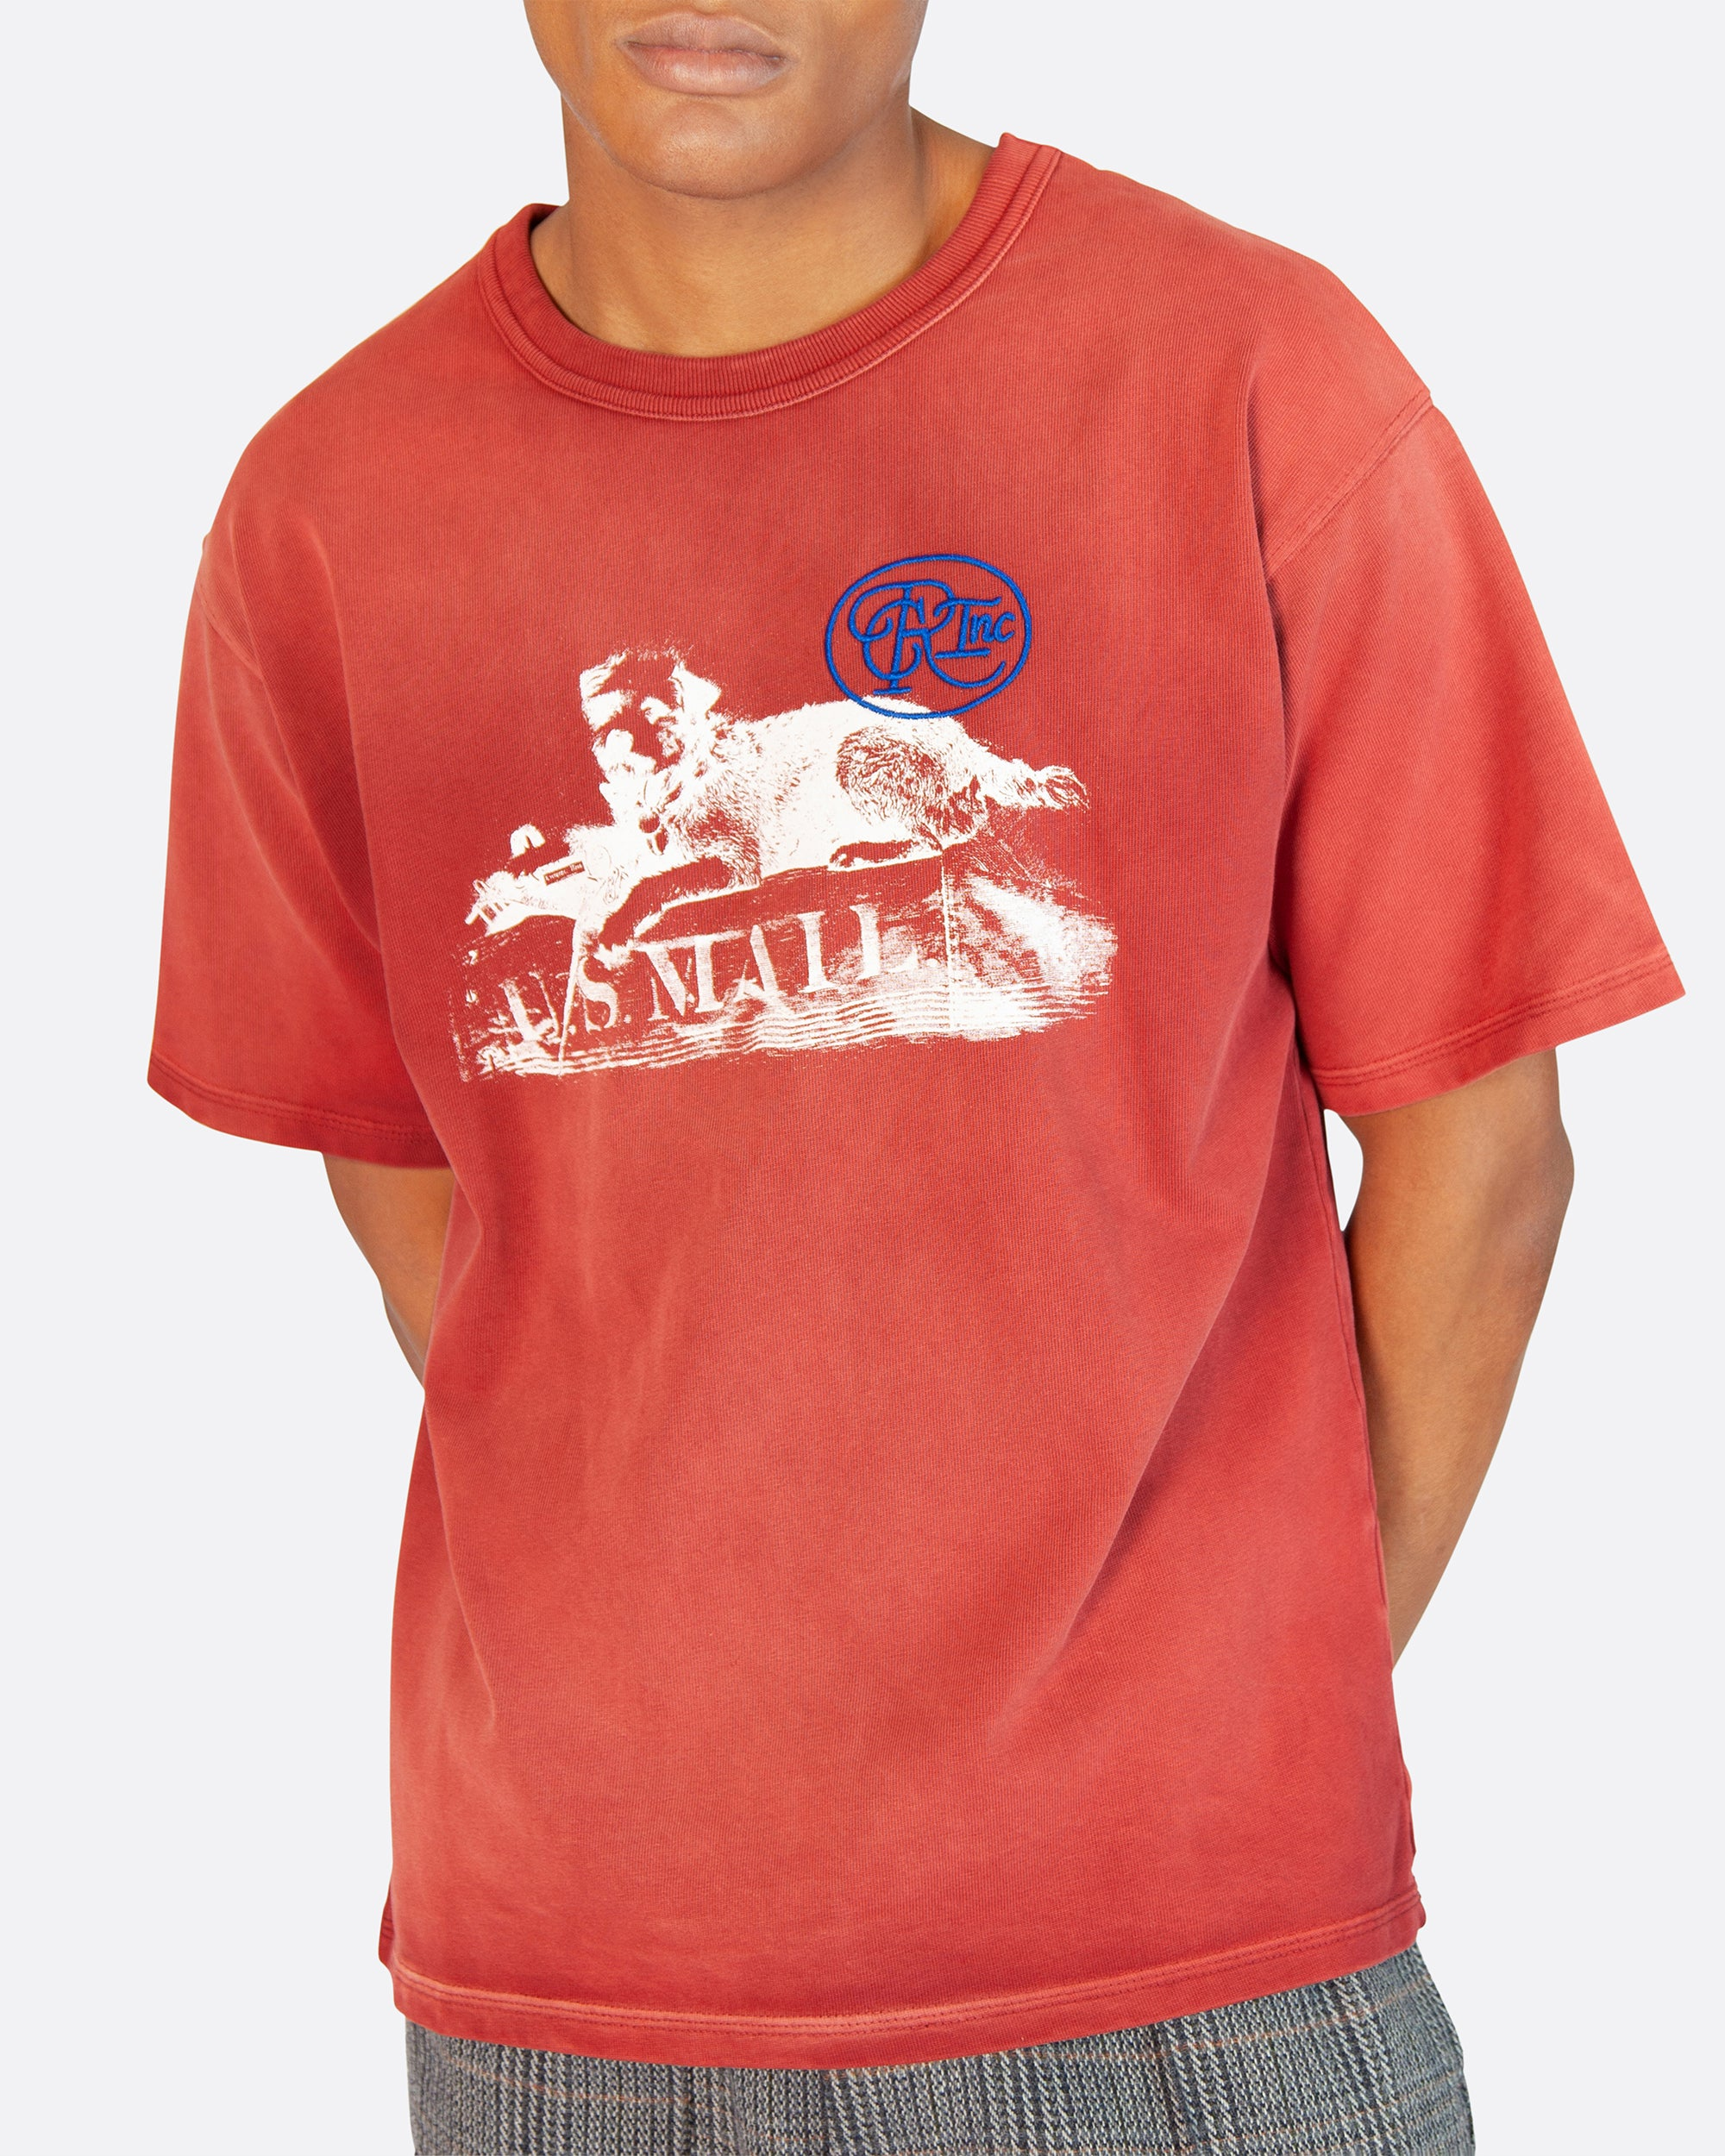 U.S. Mail Dog Aged Tee Shirt in Red